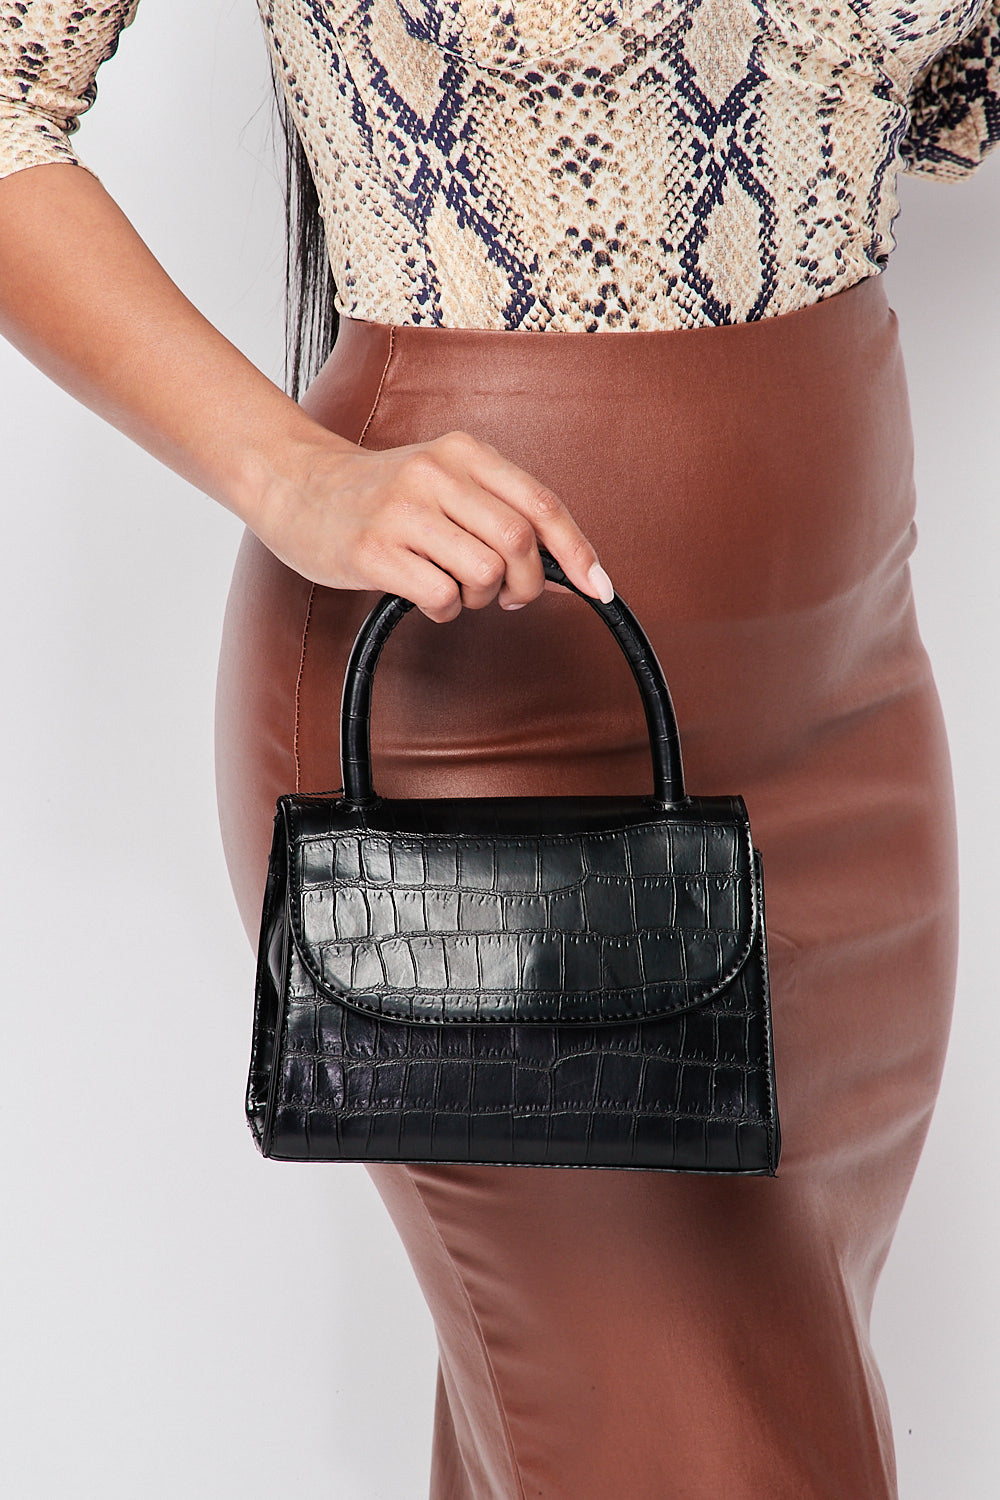 Croc Embossed Satchel Bag in Black - Fashion House USA